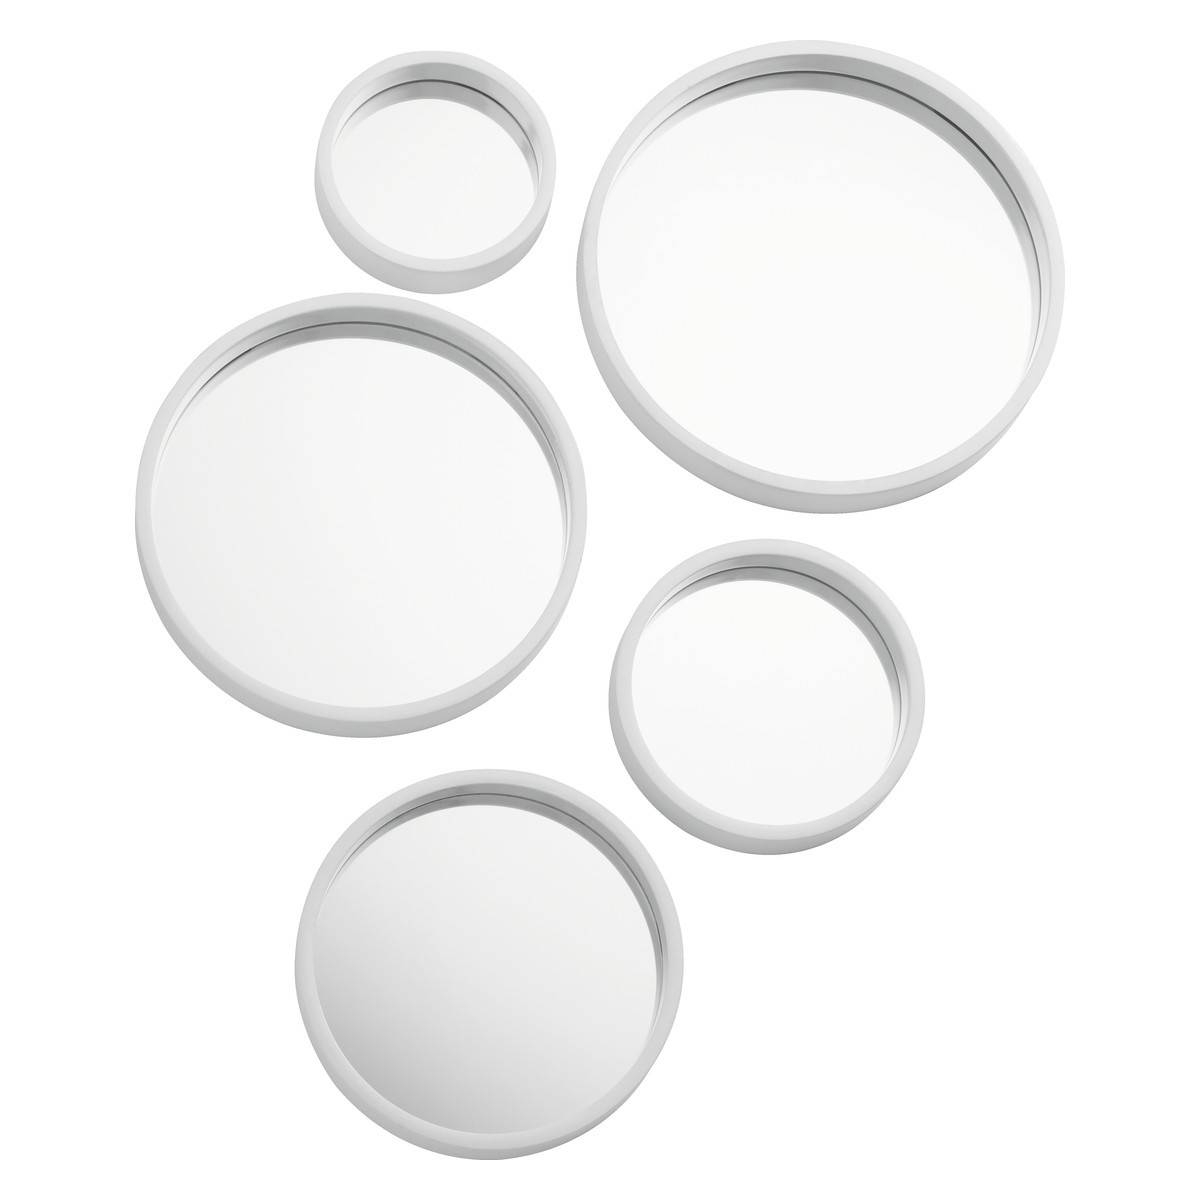 Mirror Mirror Set Of 5 White Round Mirrors | Buy Now At Habitat Uk with regard to Black Circle Mirrors (Image 16 of 25)